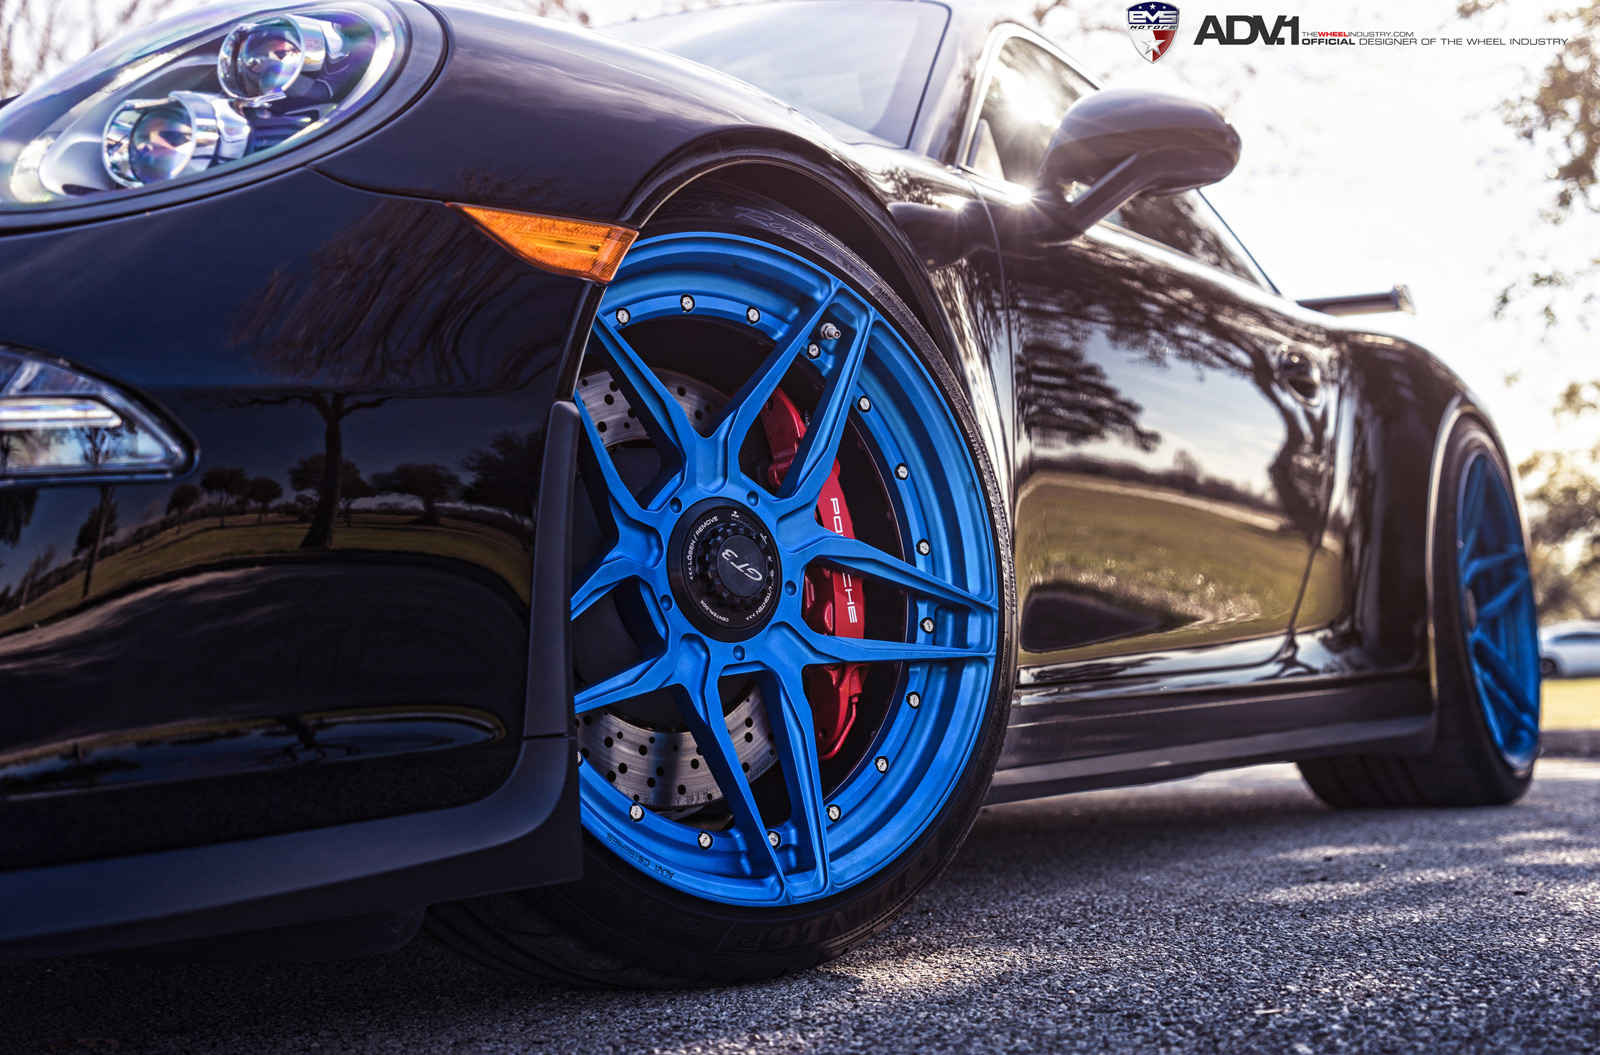 adv1-porsche-991-gt3-adv05s-mv2-sl-custom-forged-2-piece-concave-wheels-blue-06